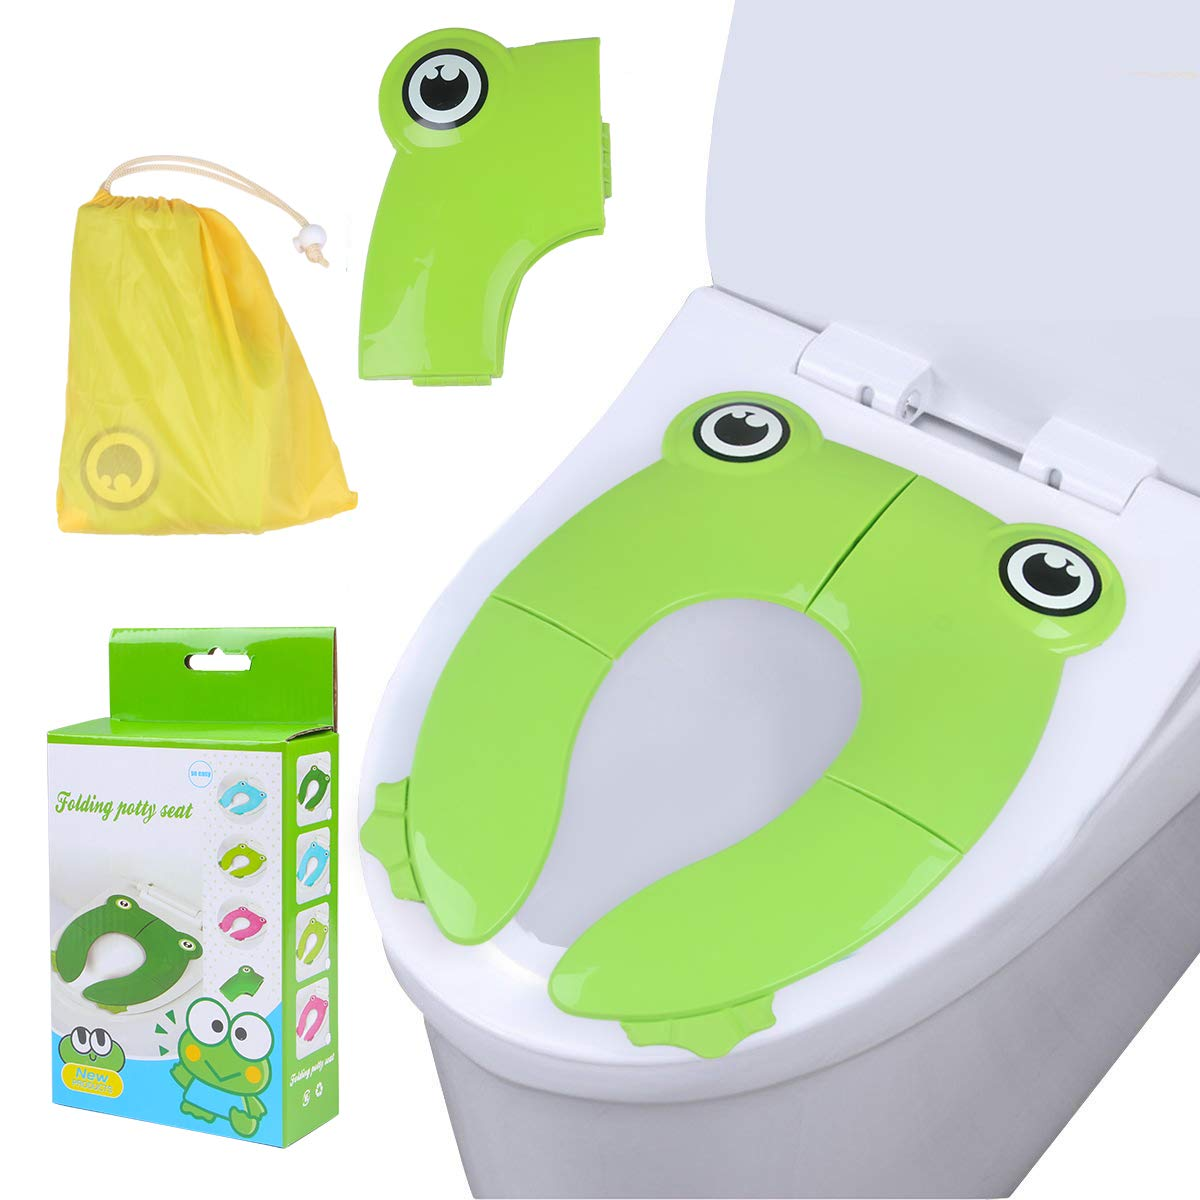 Travel Folding Portable Potty Training Toilet Seat Cover Liner Upgrade Non Slip Silicone Pads with Carry Bag for Babies, Toddlers and Kids (Owl) Youth Union